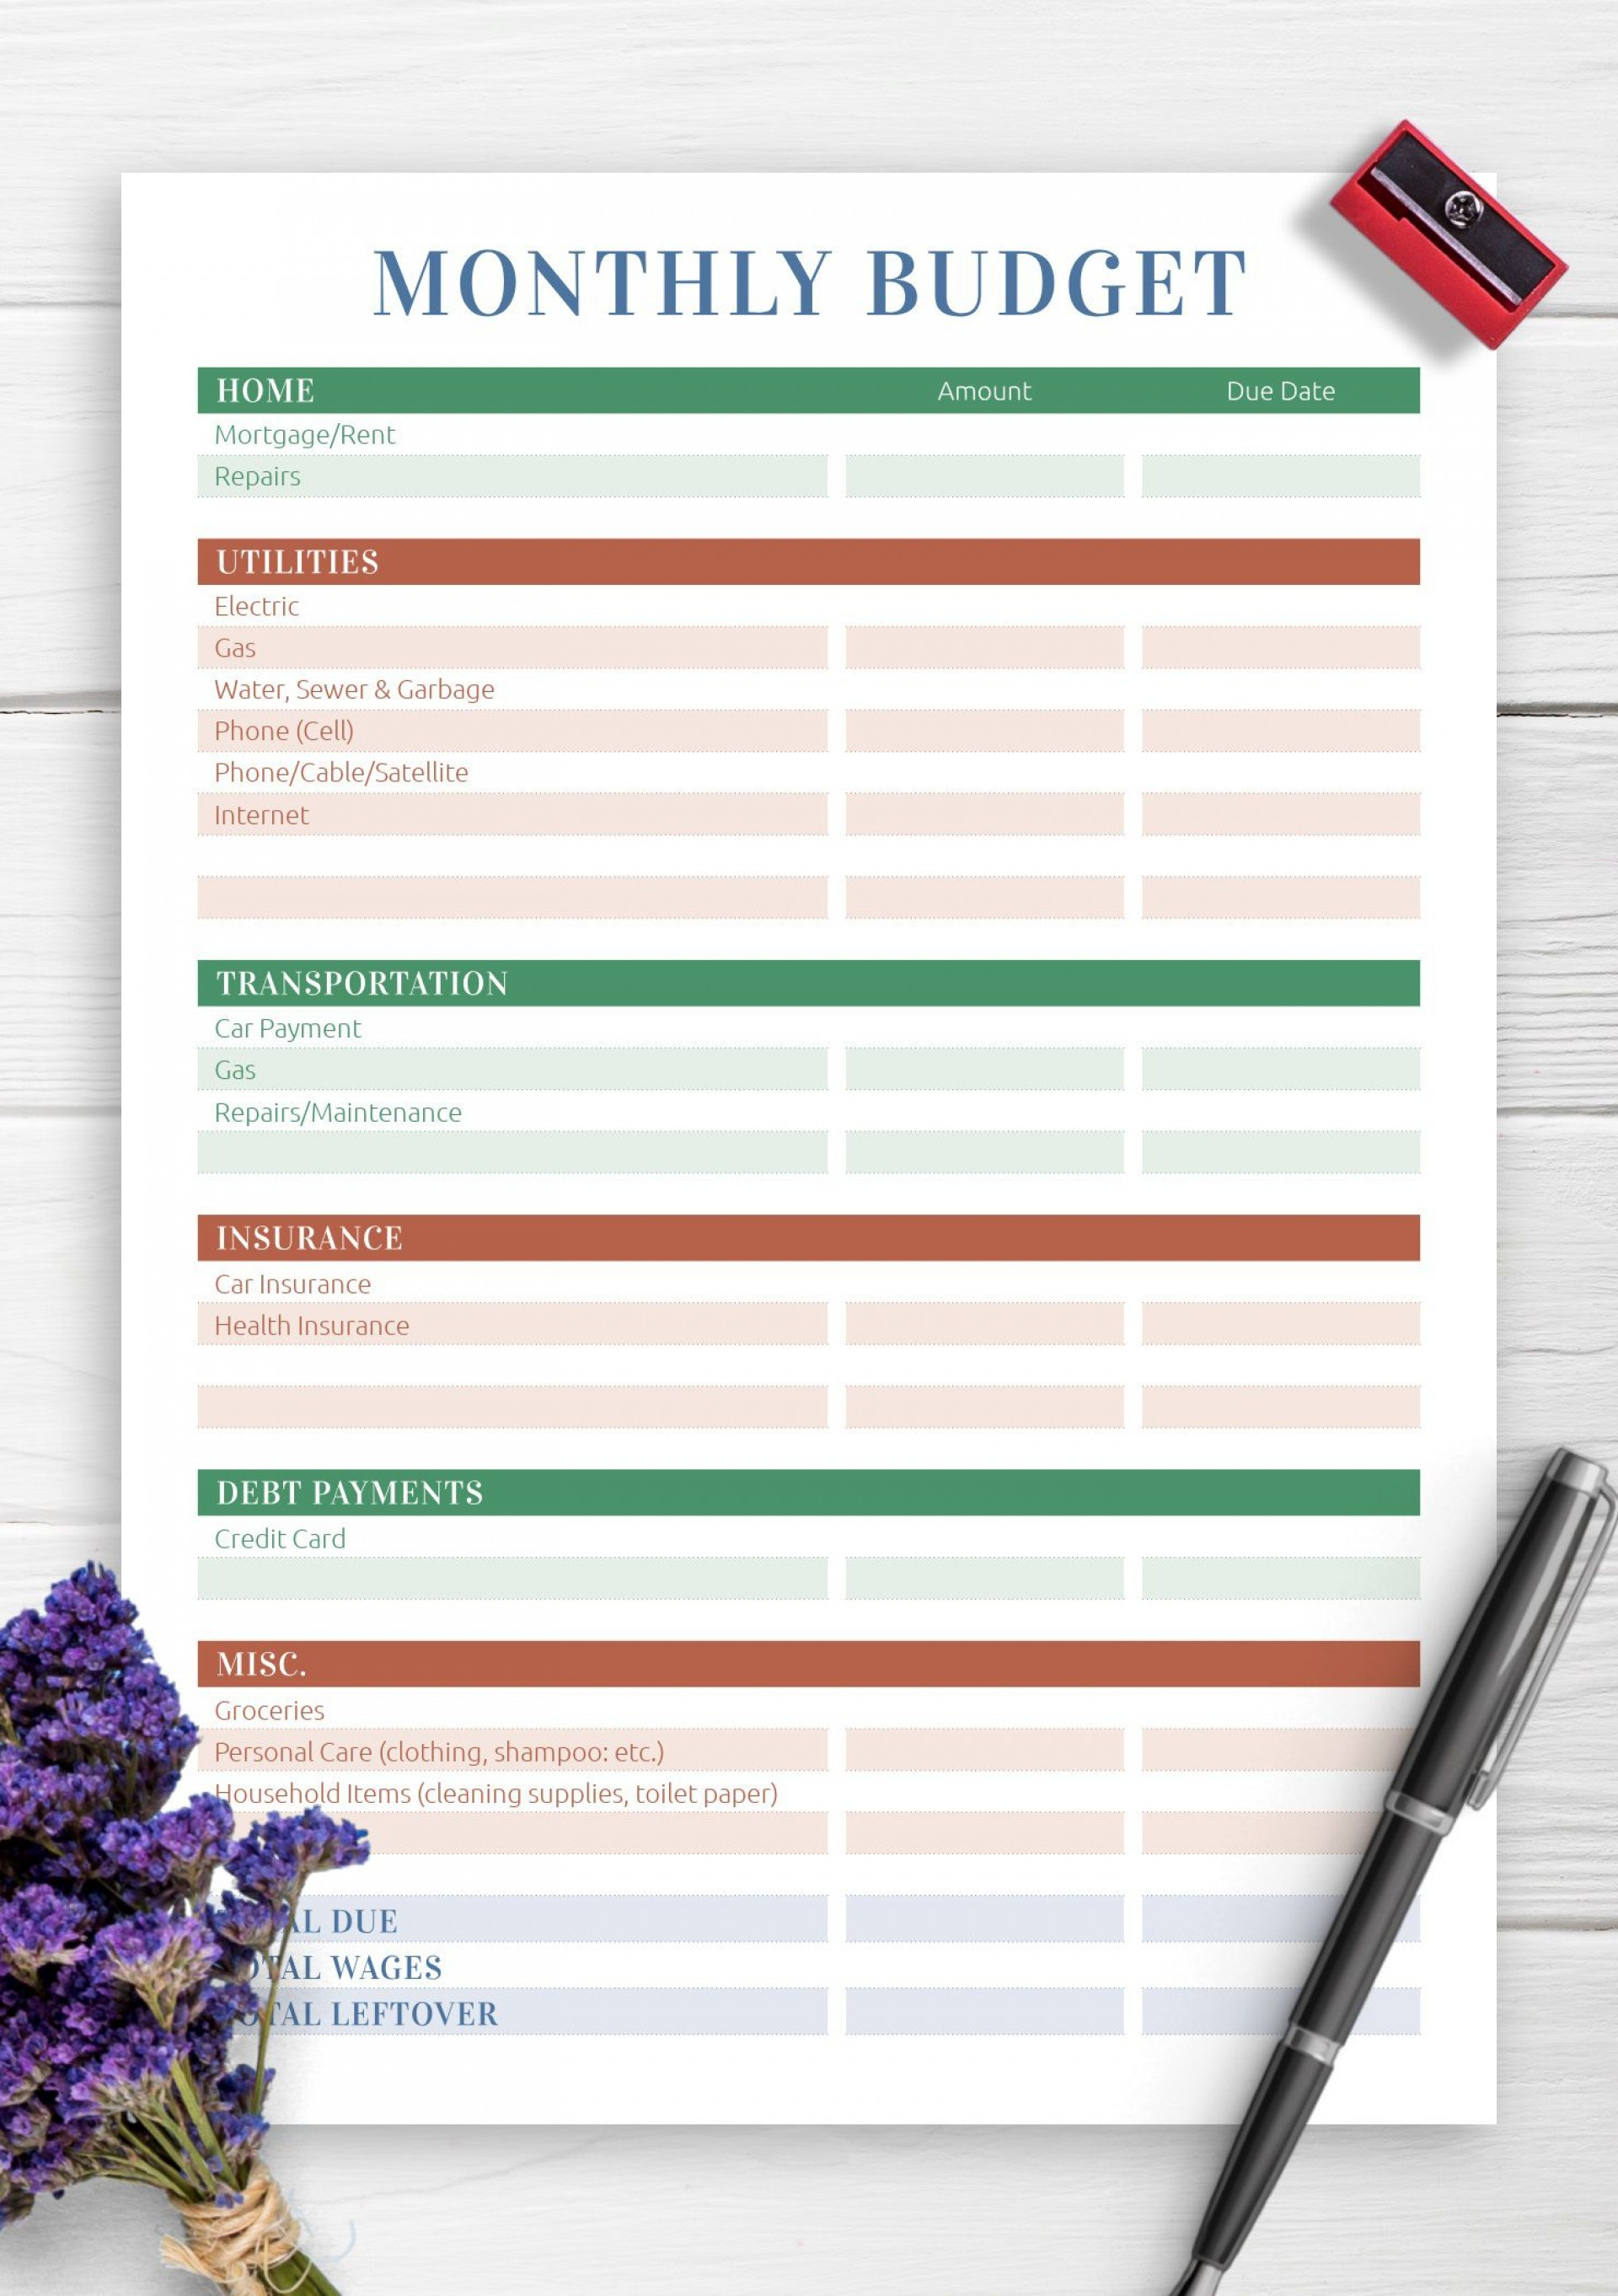 007 Phenomenal Free Printable Monthly Budget Form Highest Clarity  Forms Personal Template Blank Spreadsheet1920